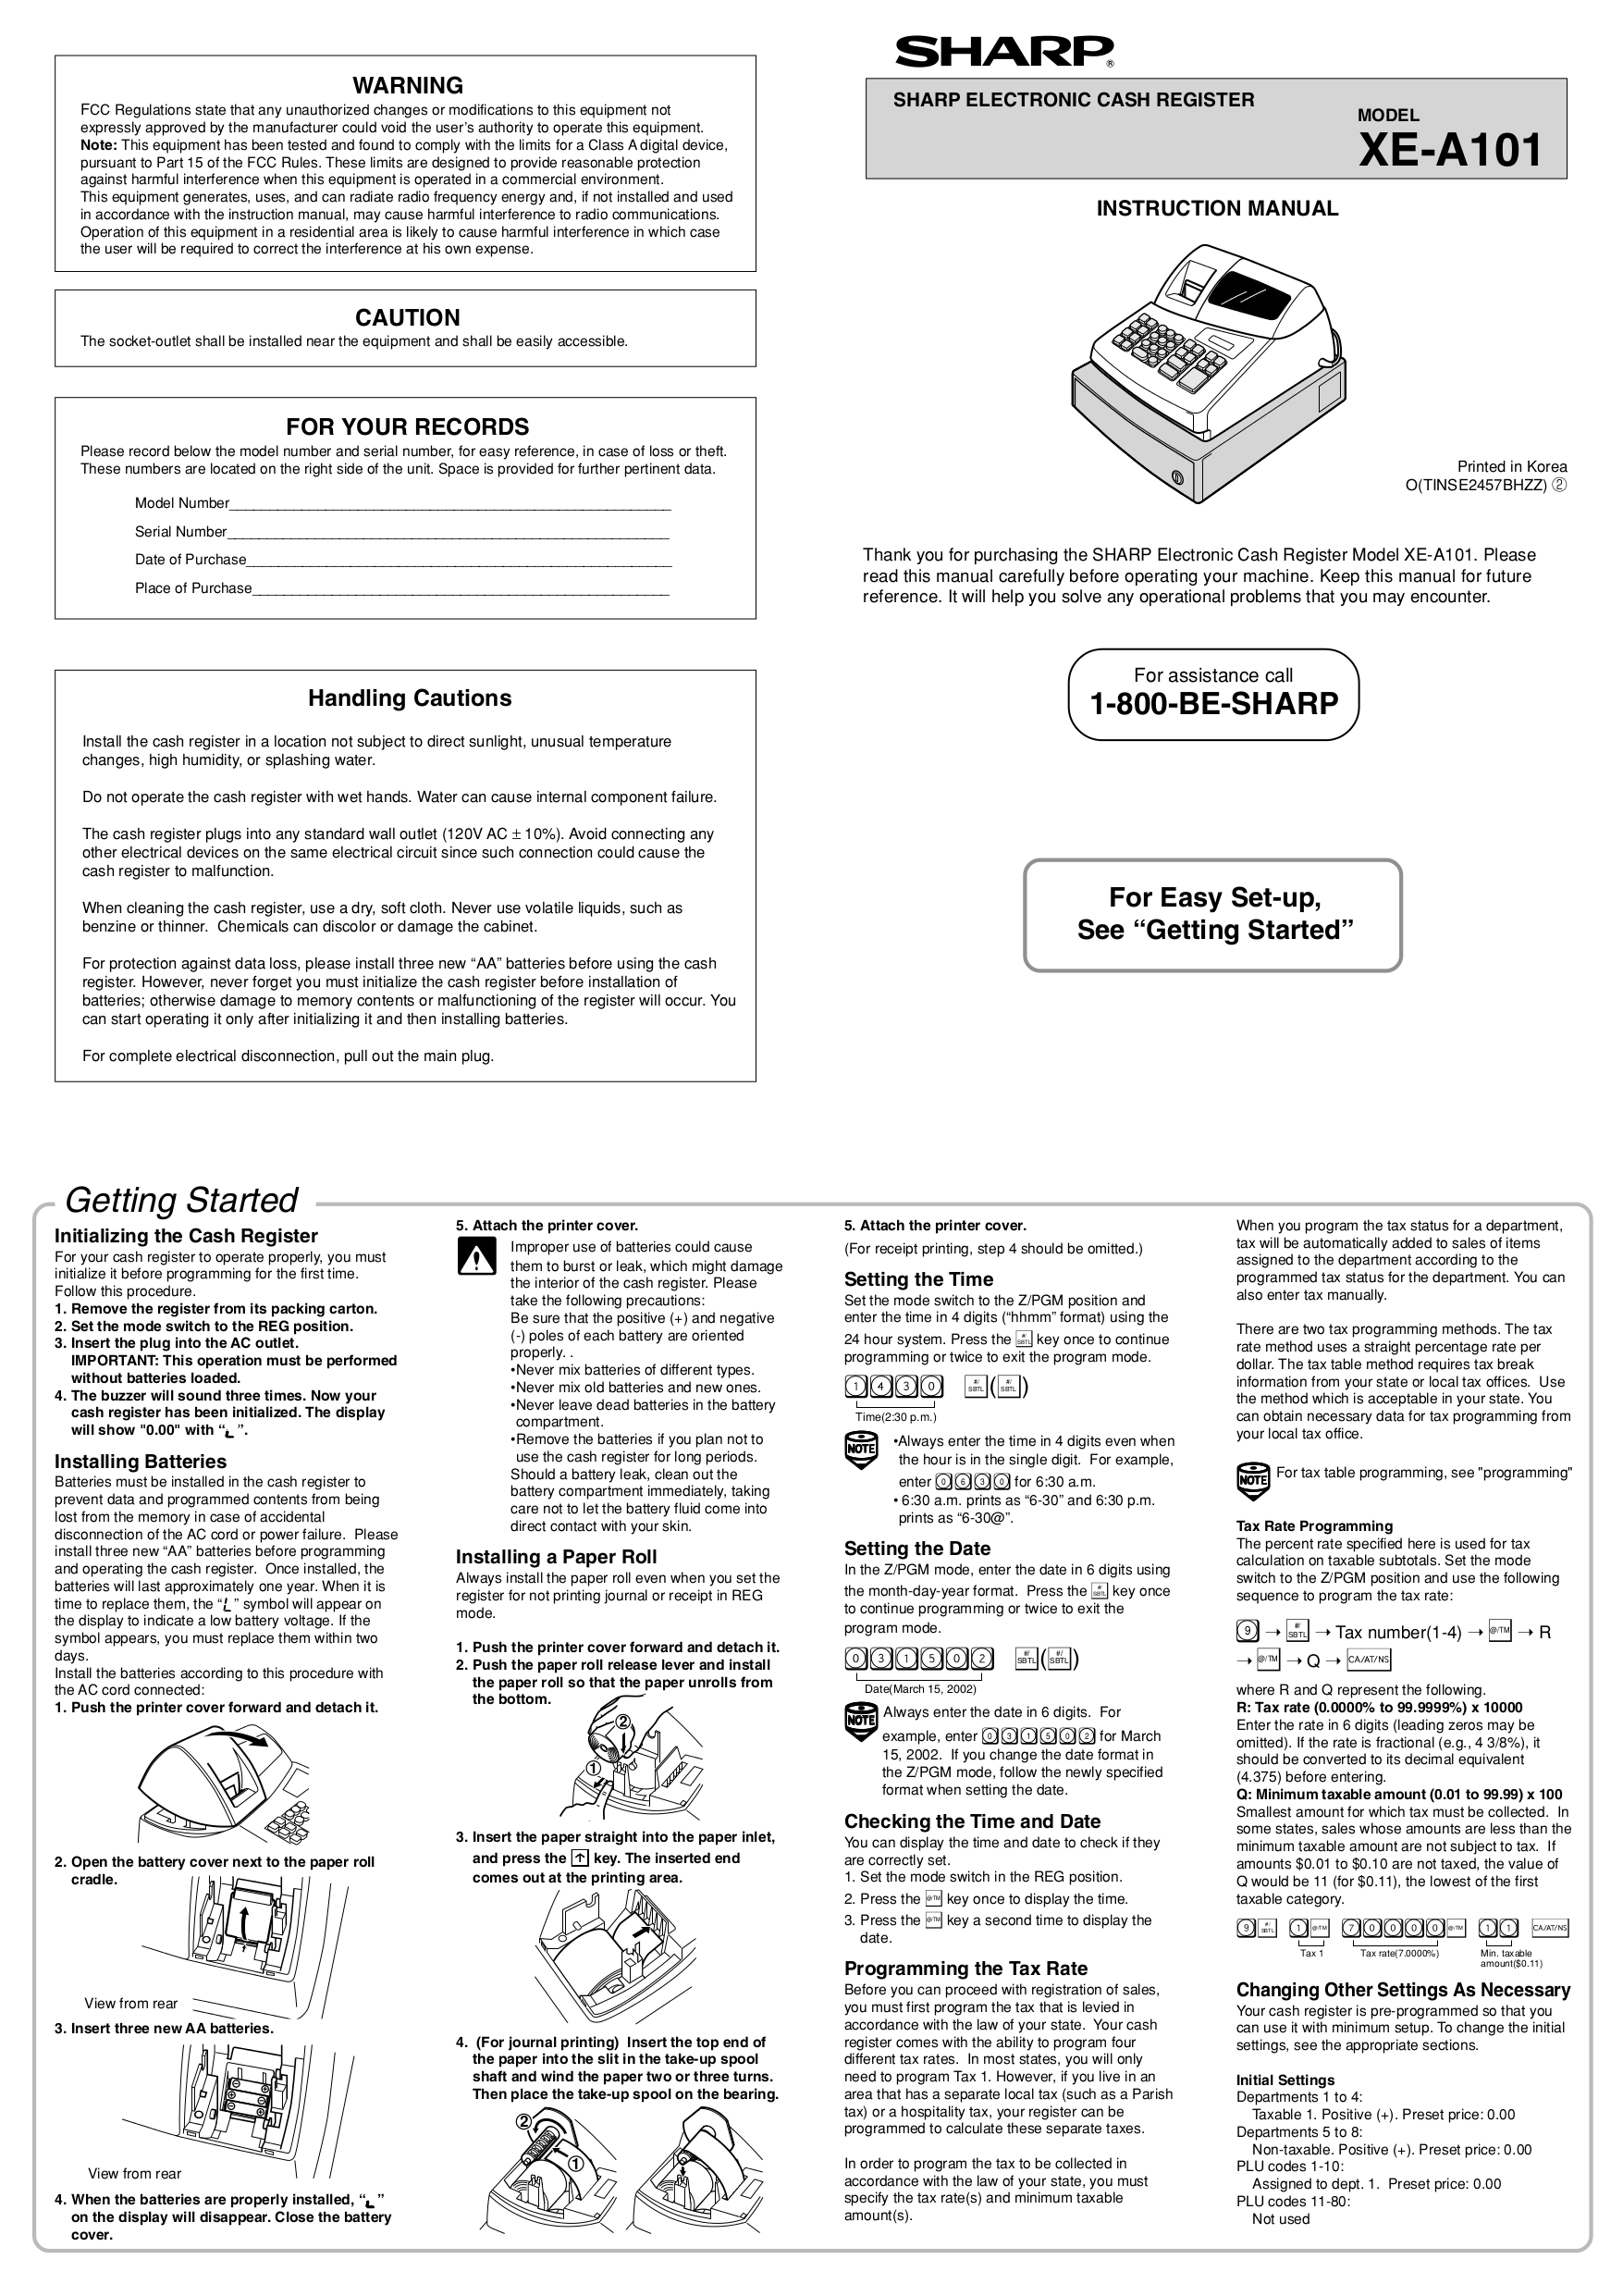 pdf for Sharp Other XE-A101 Cash Register manual